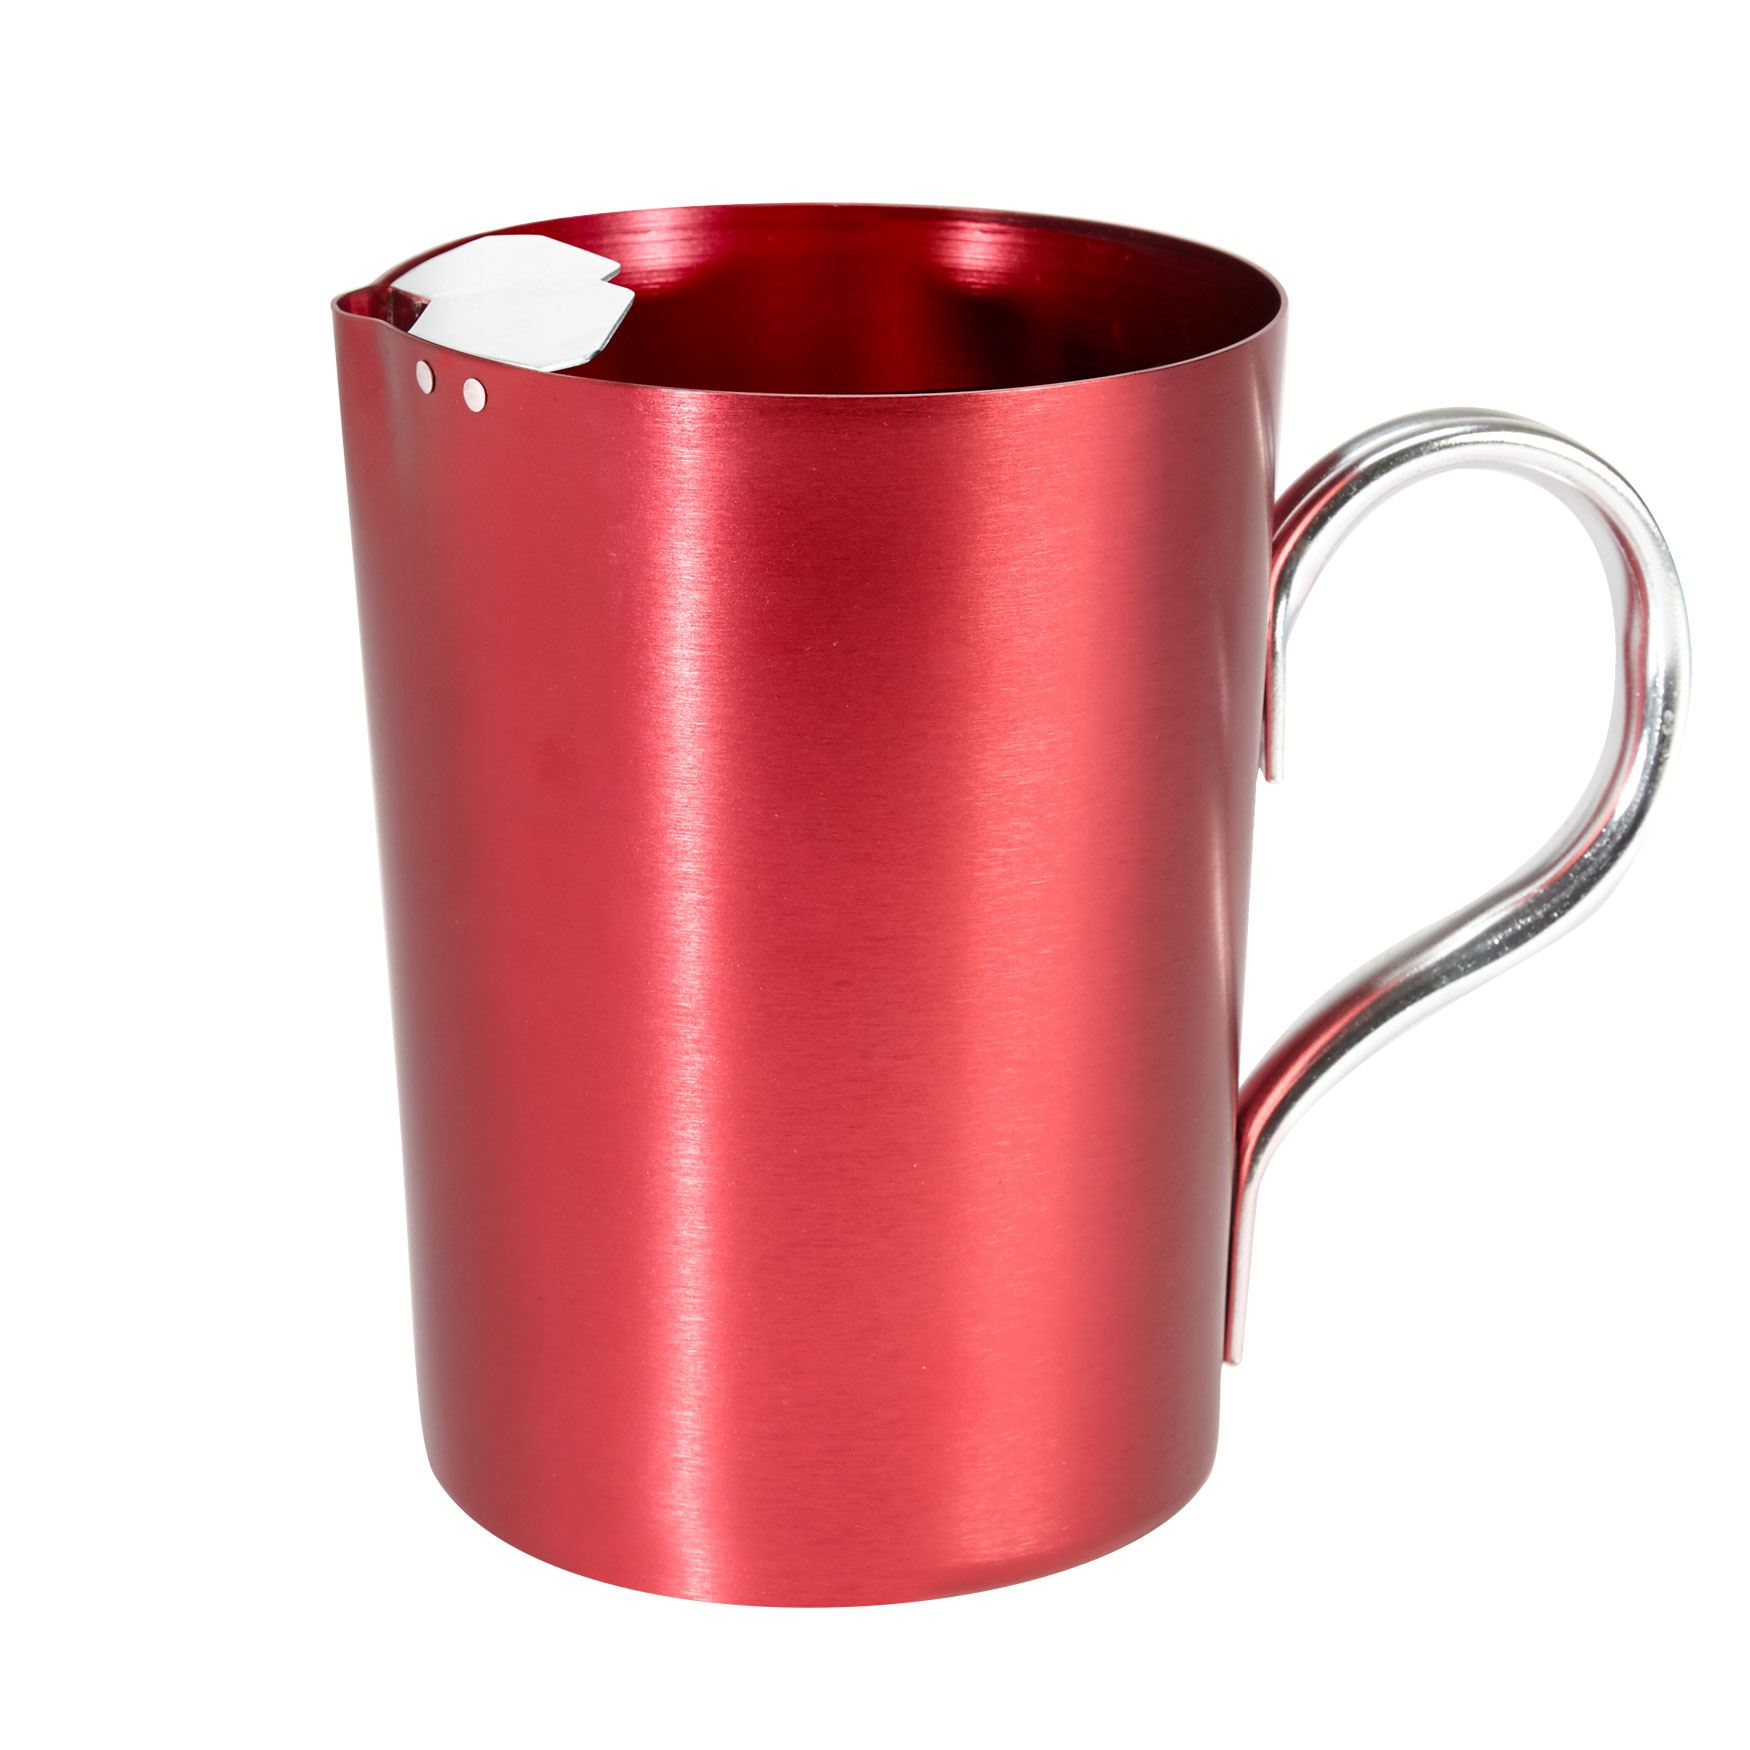 Anodized Pitcher, RED